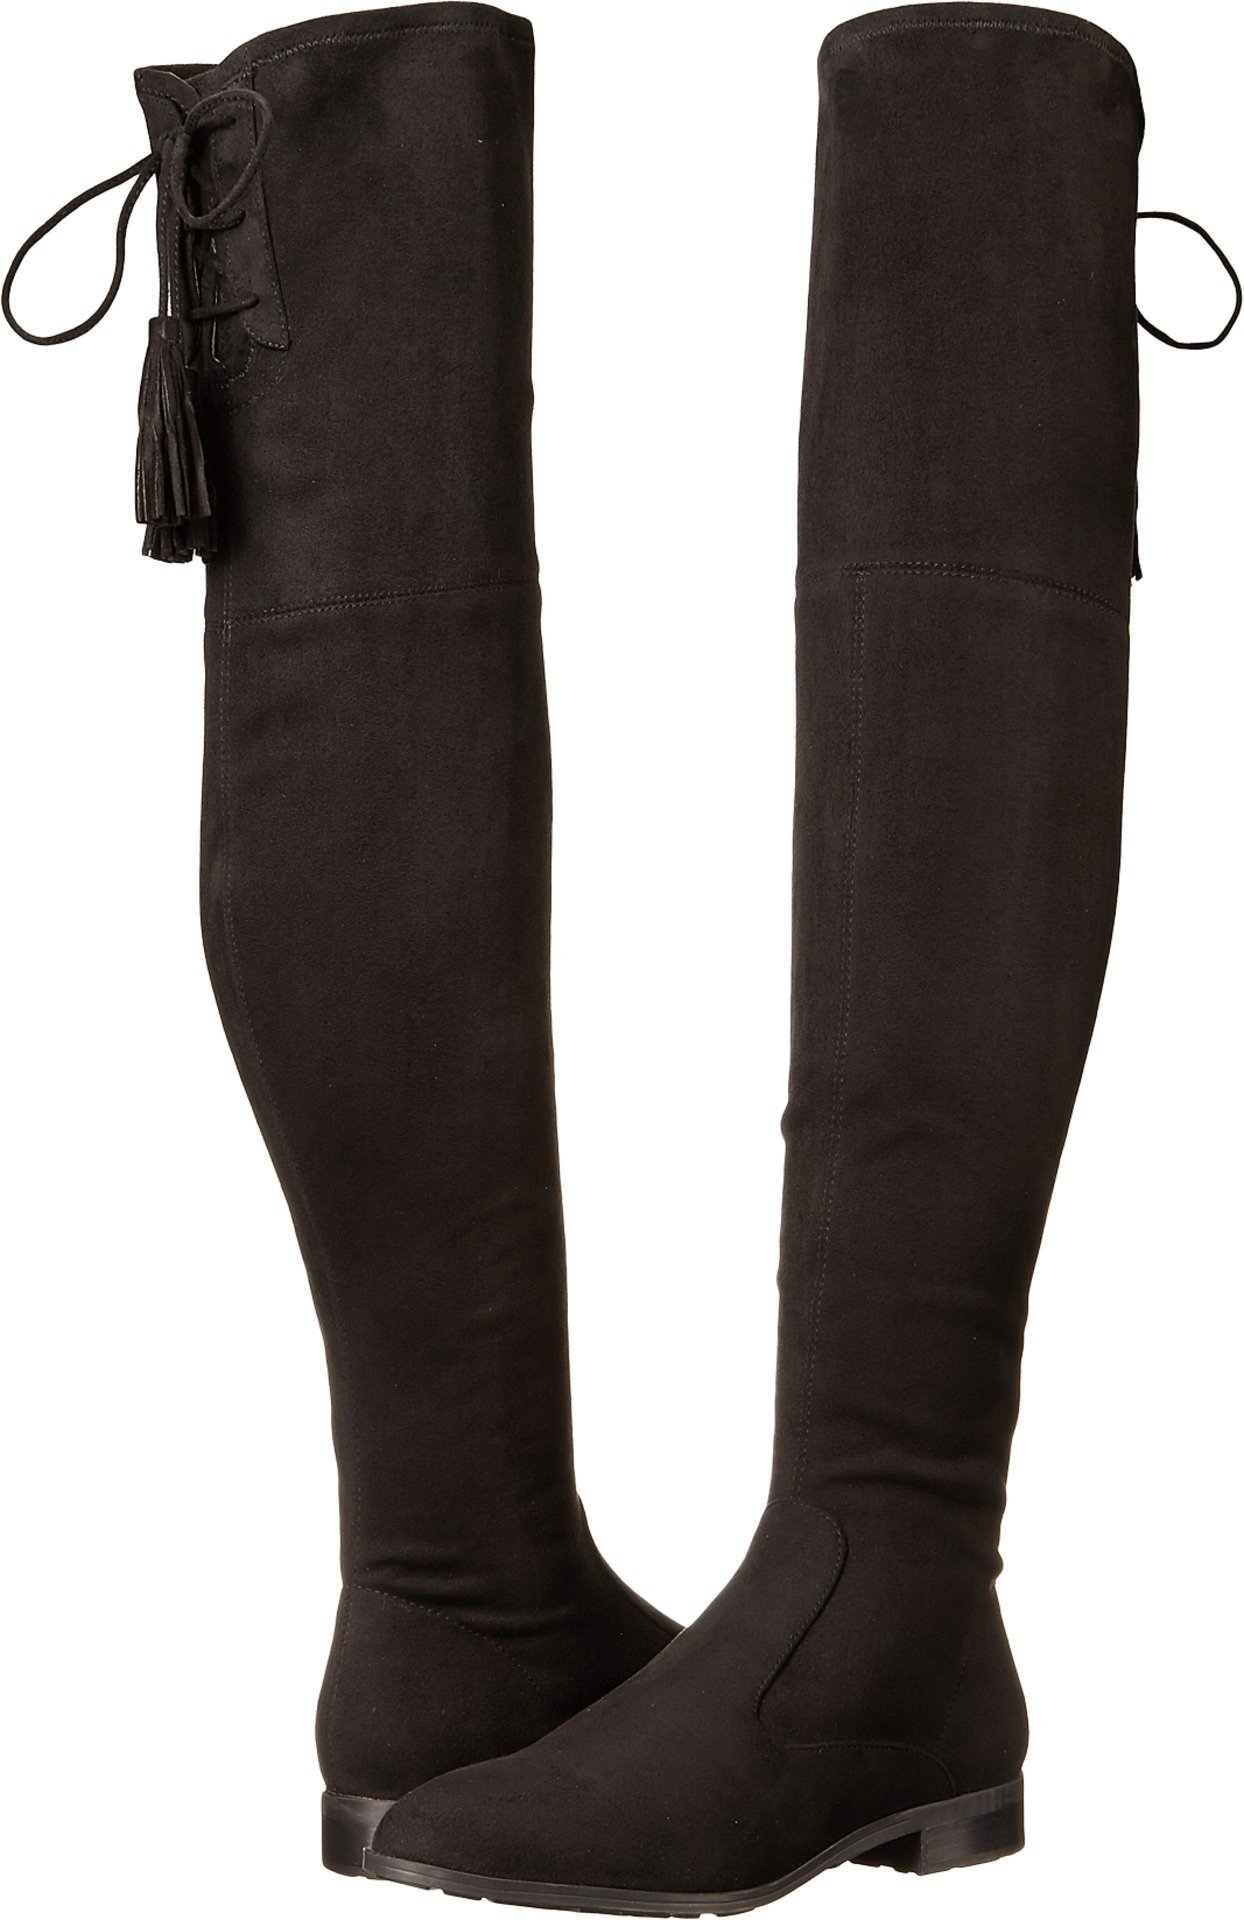 Marc Fisher Women's Olympia Over the Knee Boot, Black, 10 Medium US